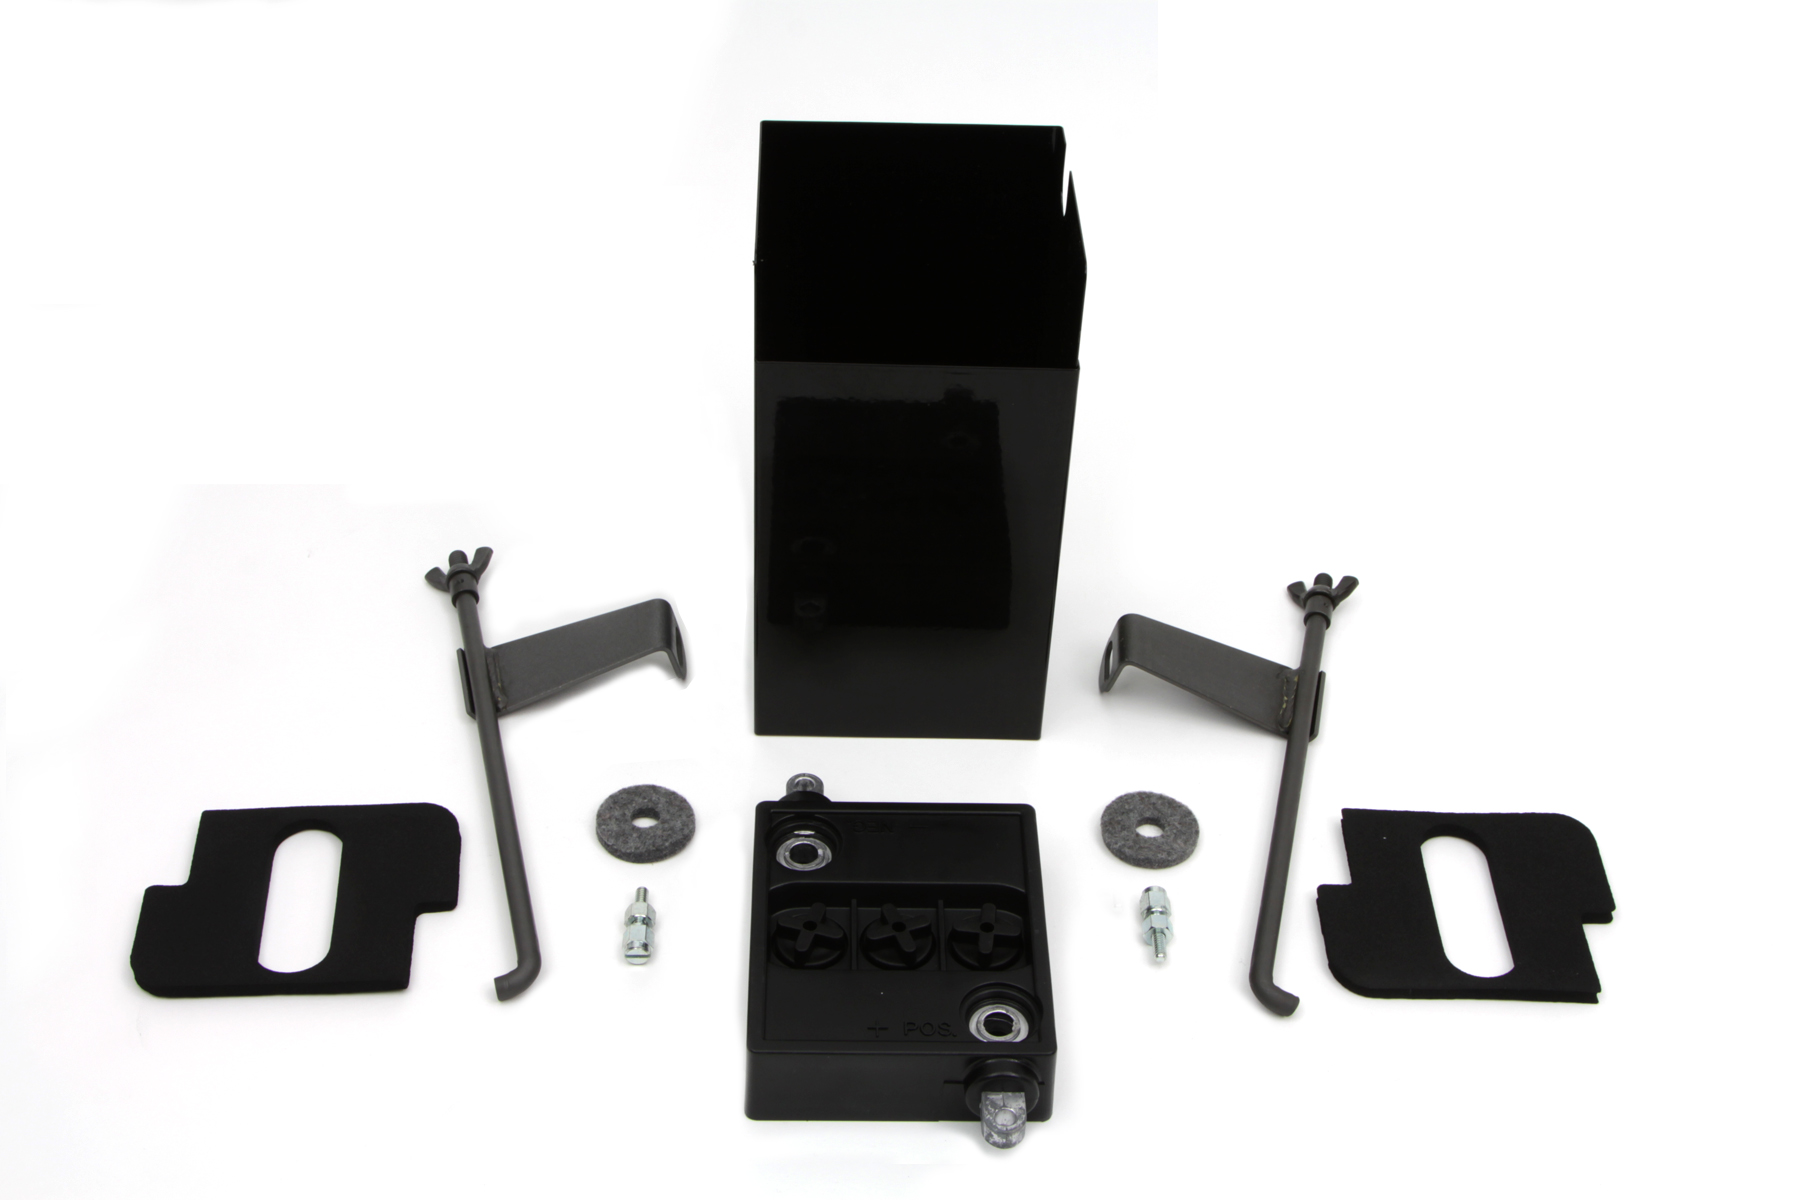 Black 6 Volt Battery Box Kit